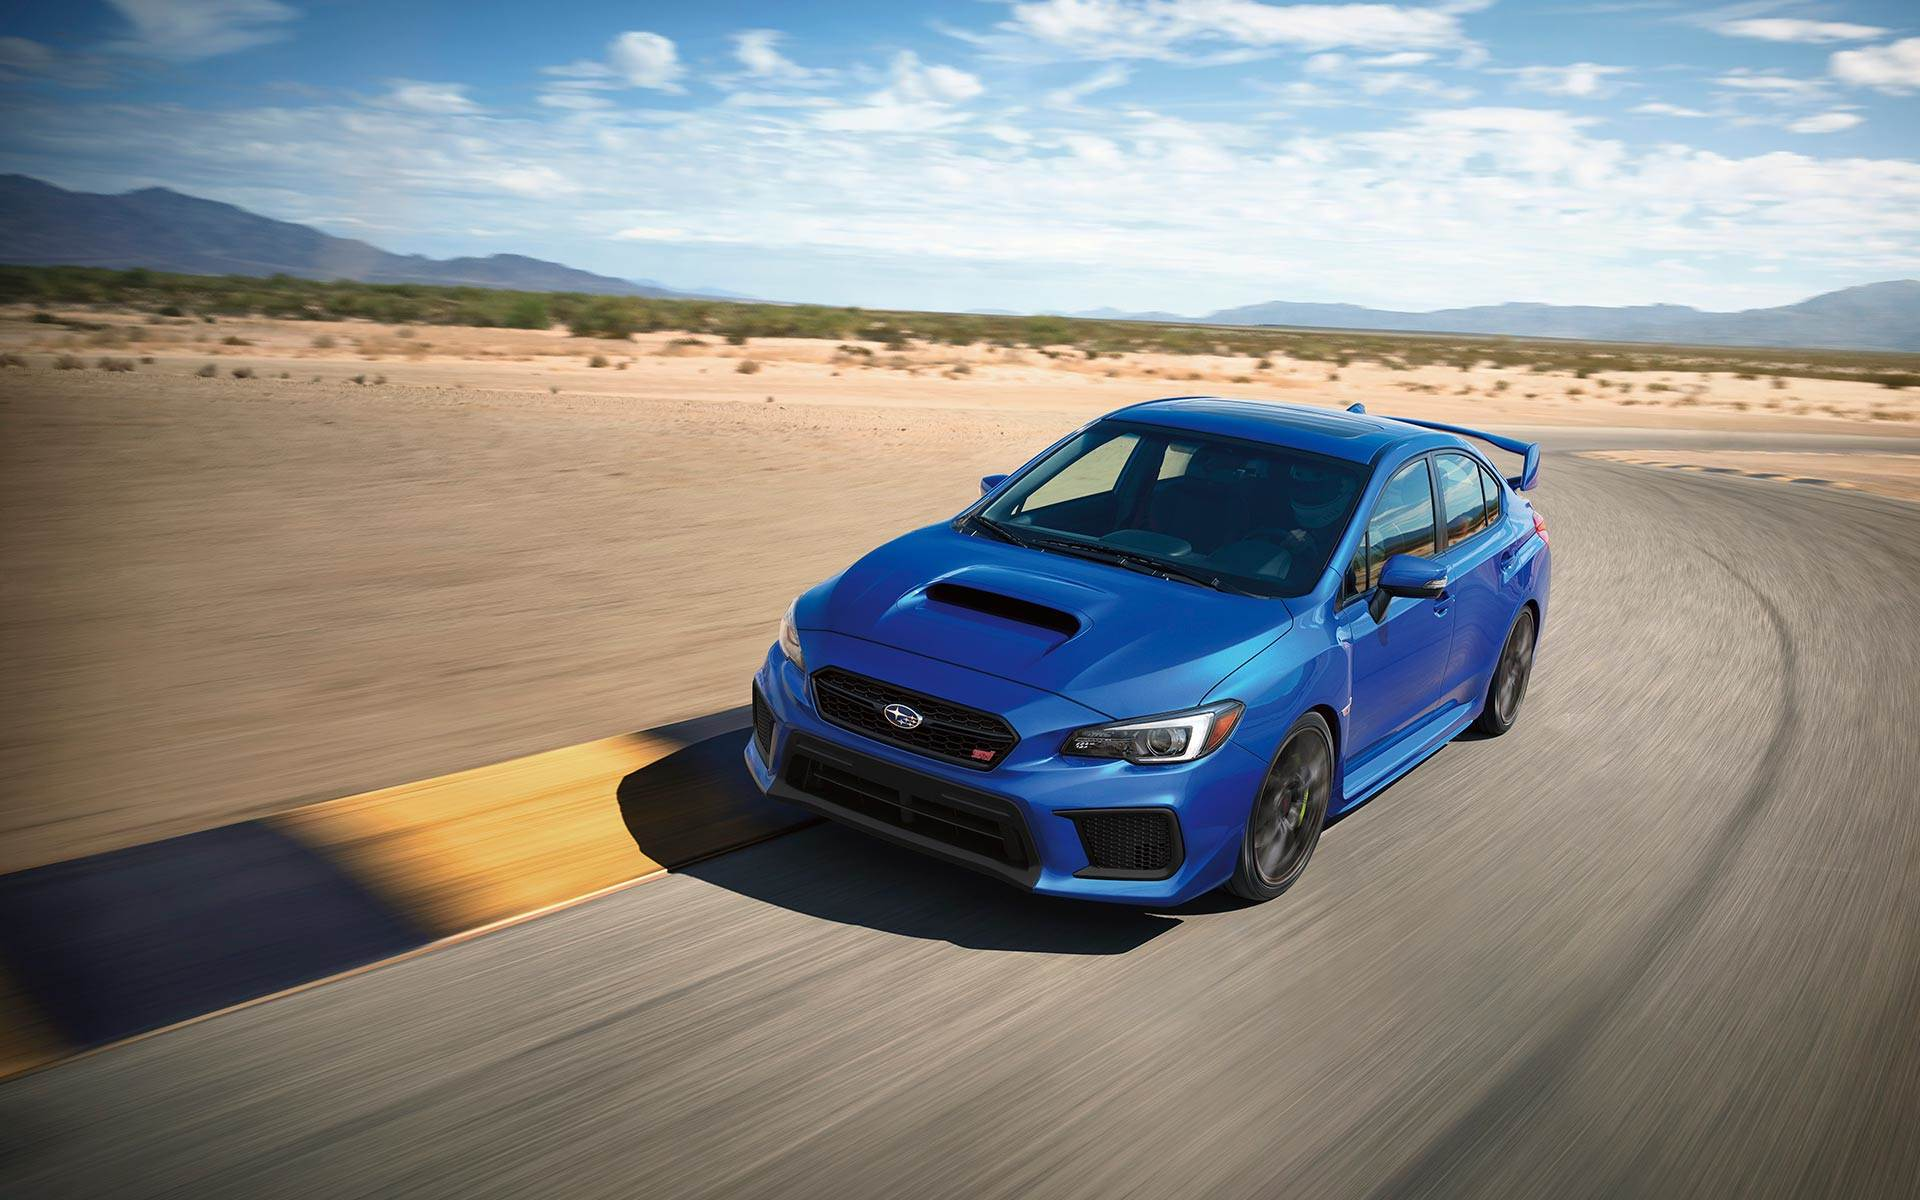 2018 Subaru WRX for Sale in Sacramento, CA